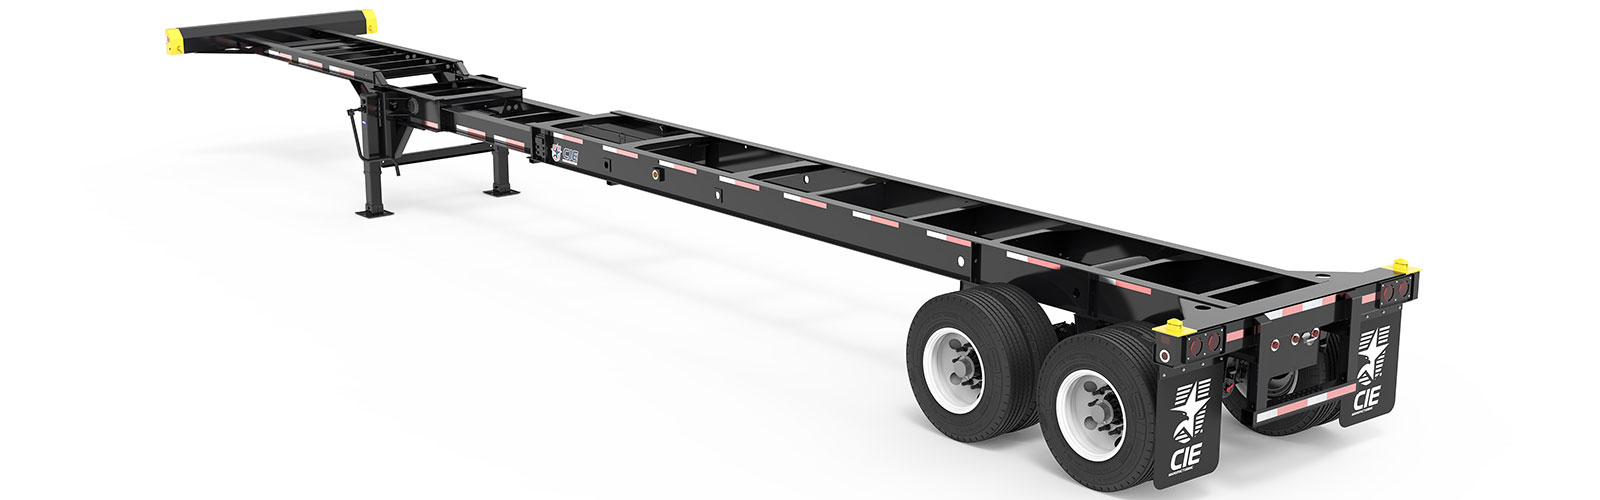 40-45' Extendable Tandem Container Chassis Back Angle View Final